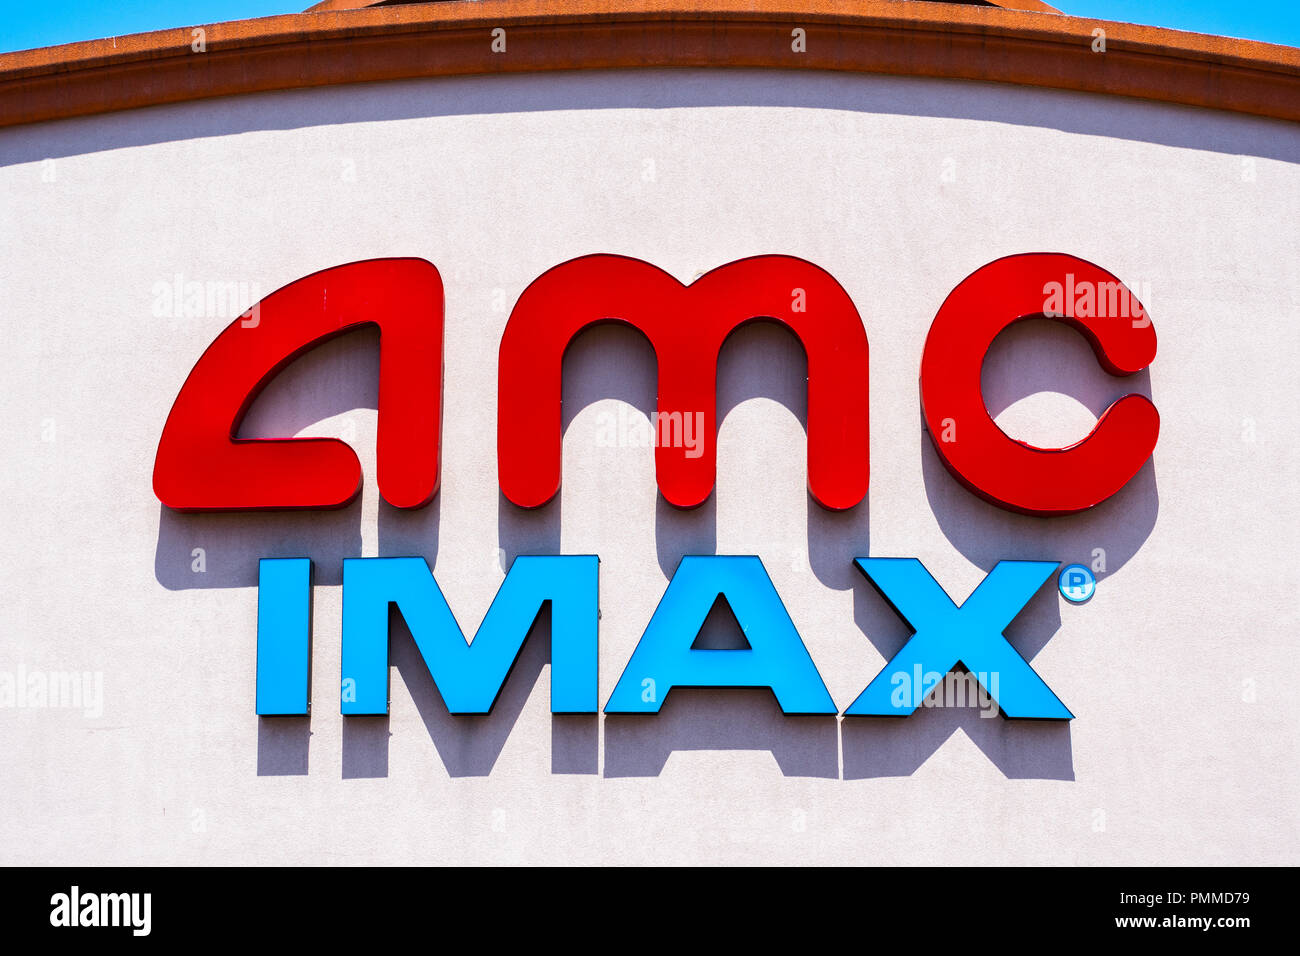 May 3, 2018 Santa Clara / CA / USA - AMC IMAX logo above the entrance and box office - Stock Image